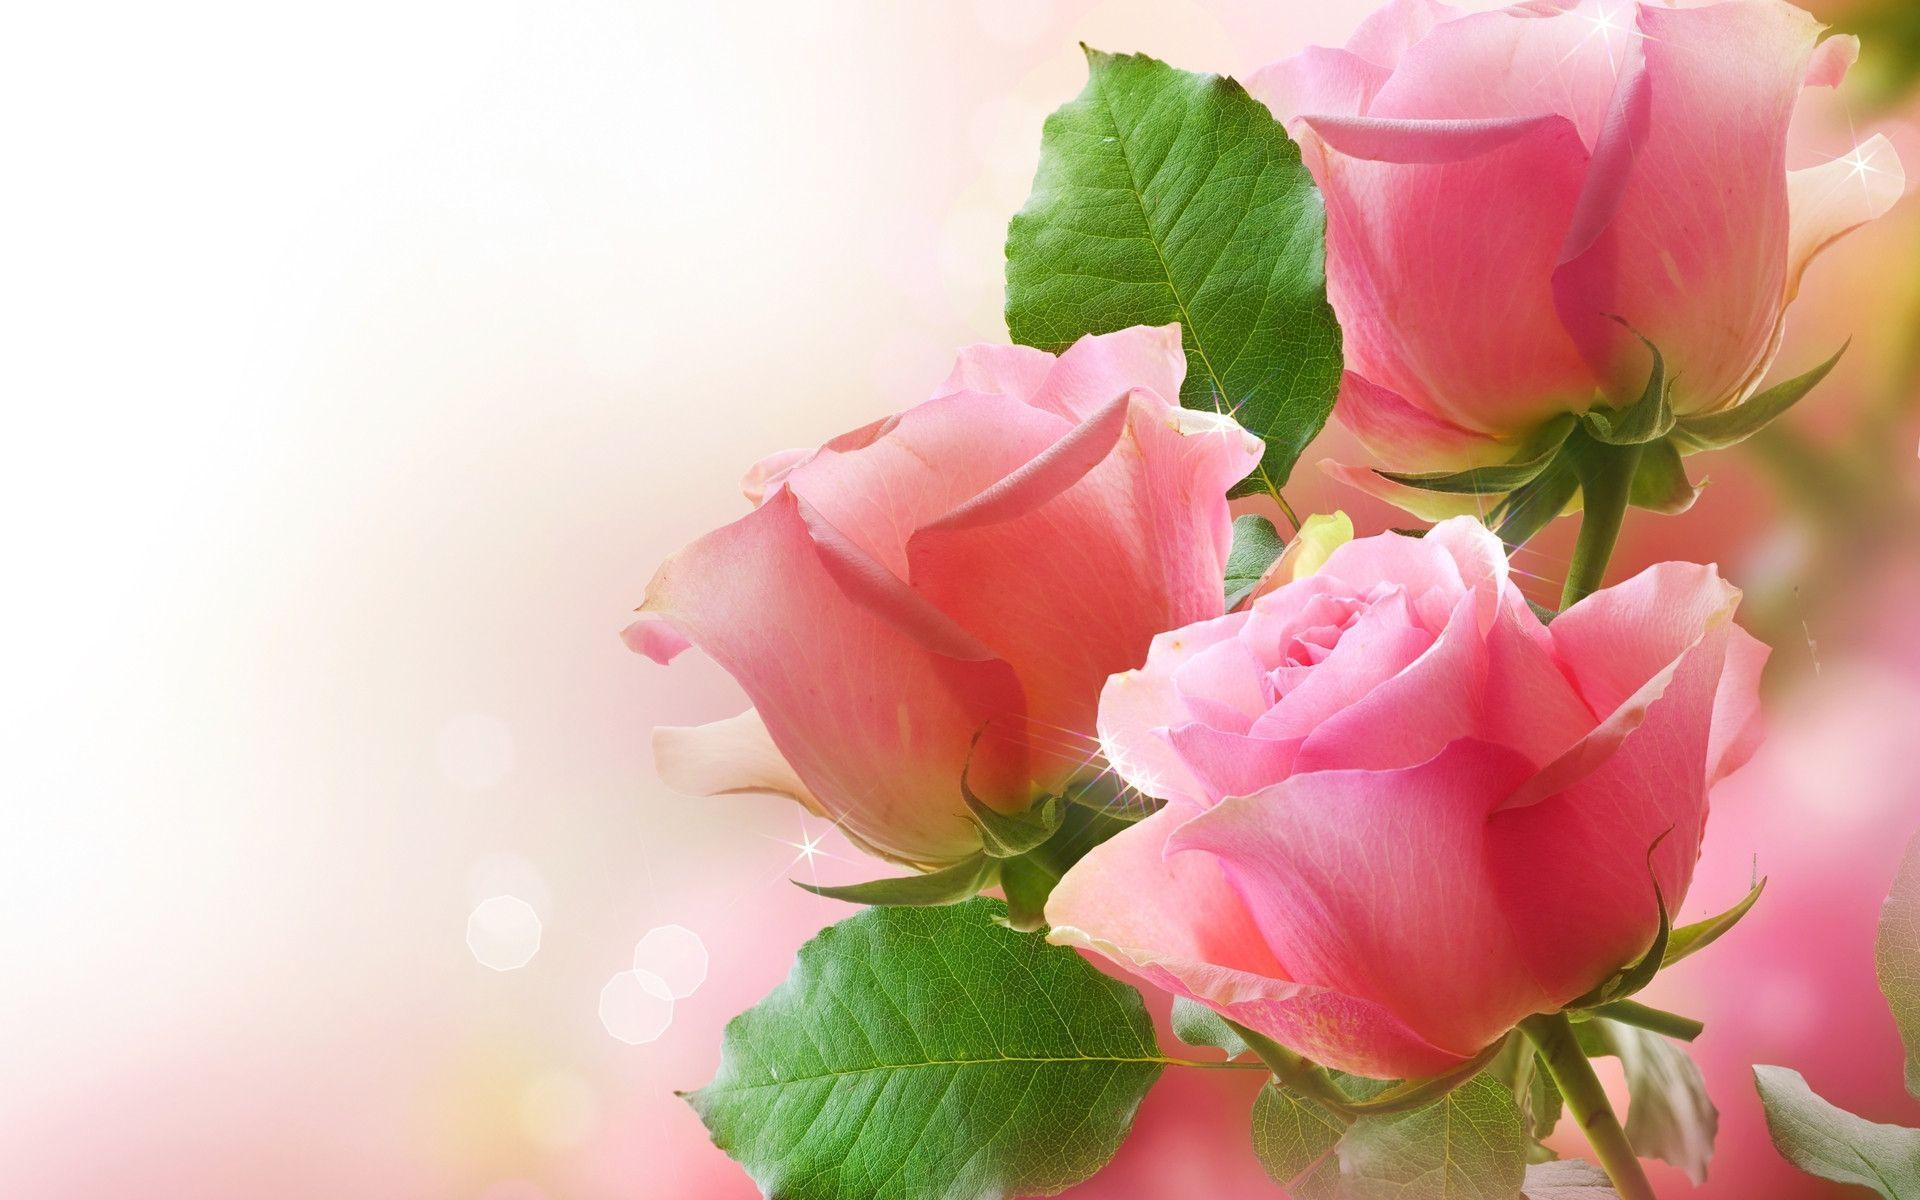 Wallpaper Flower Rose Love HD Wallpapers Pictures | HD Wallpaper Photo